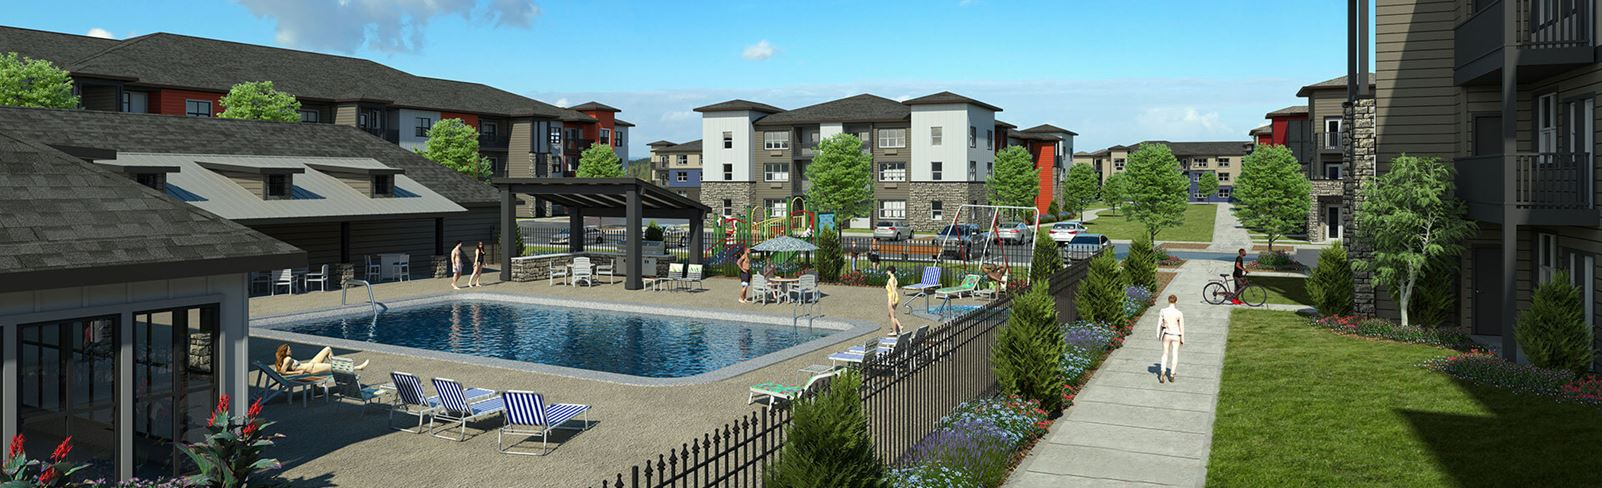 Zera Apartments in Reed's Crossing South Hillsboro Oregon